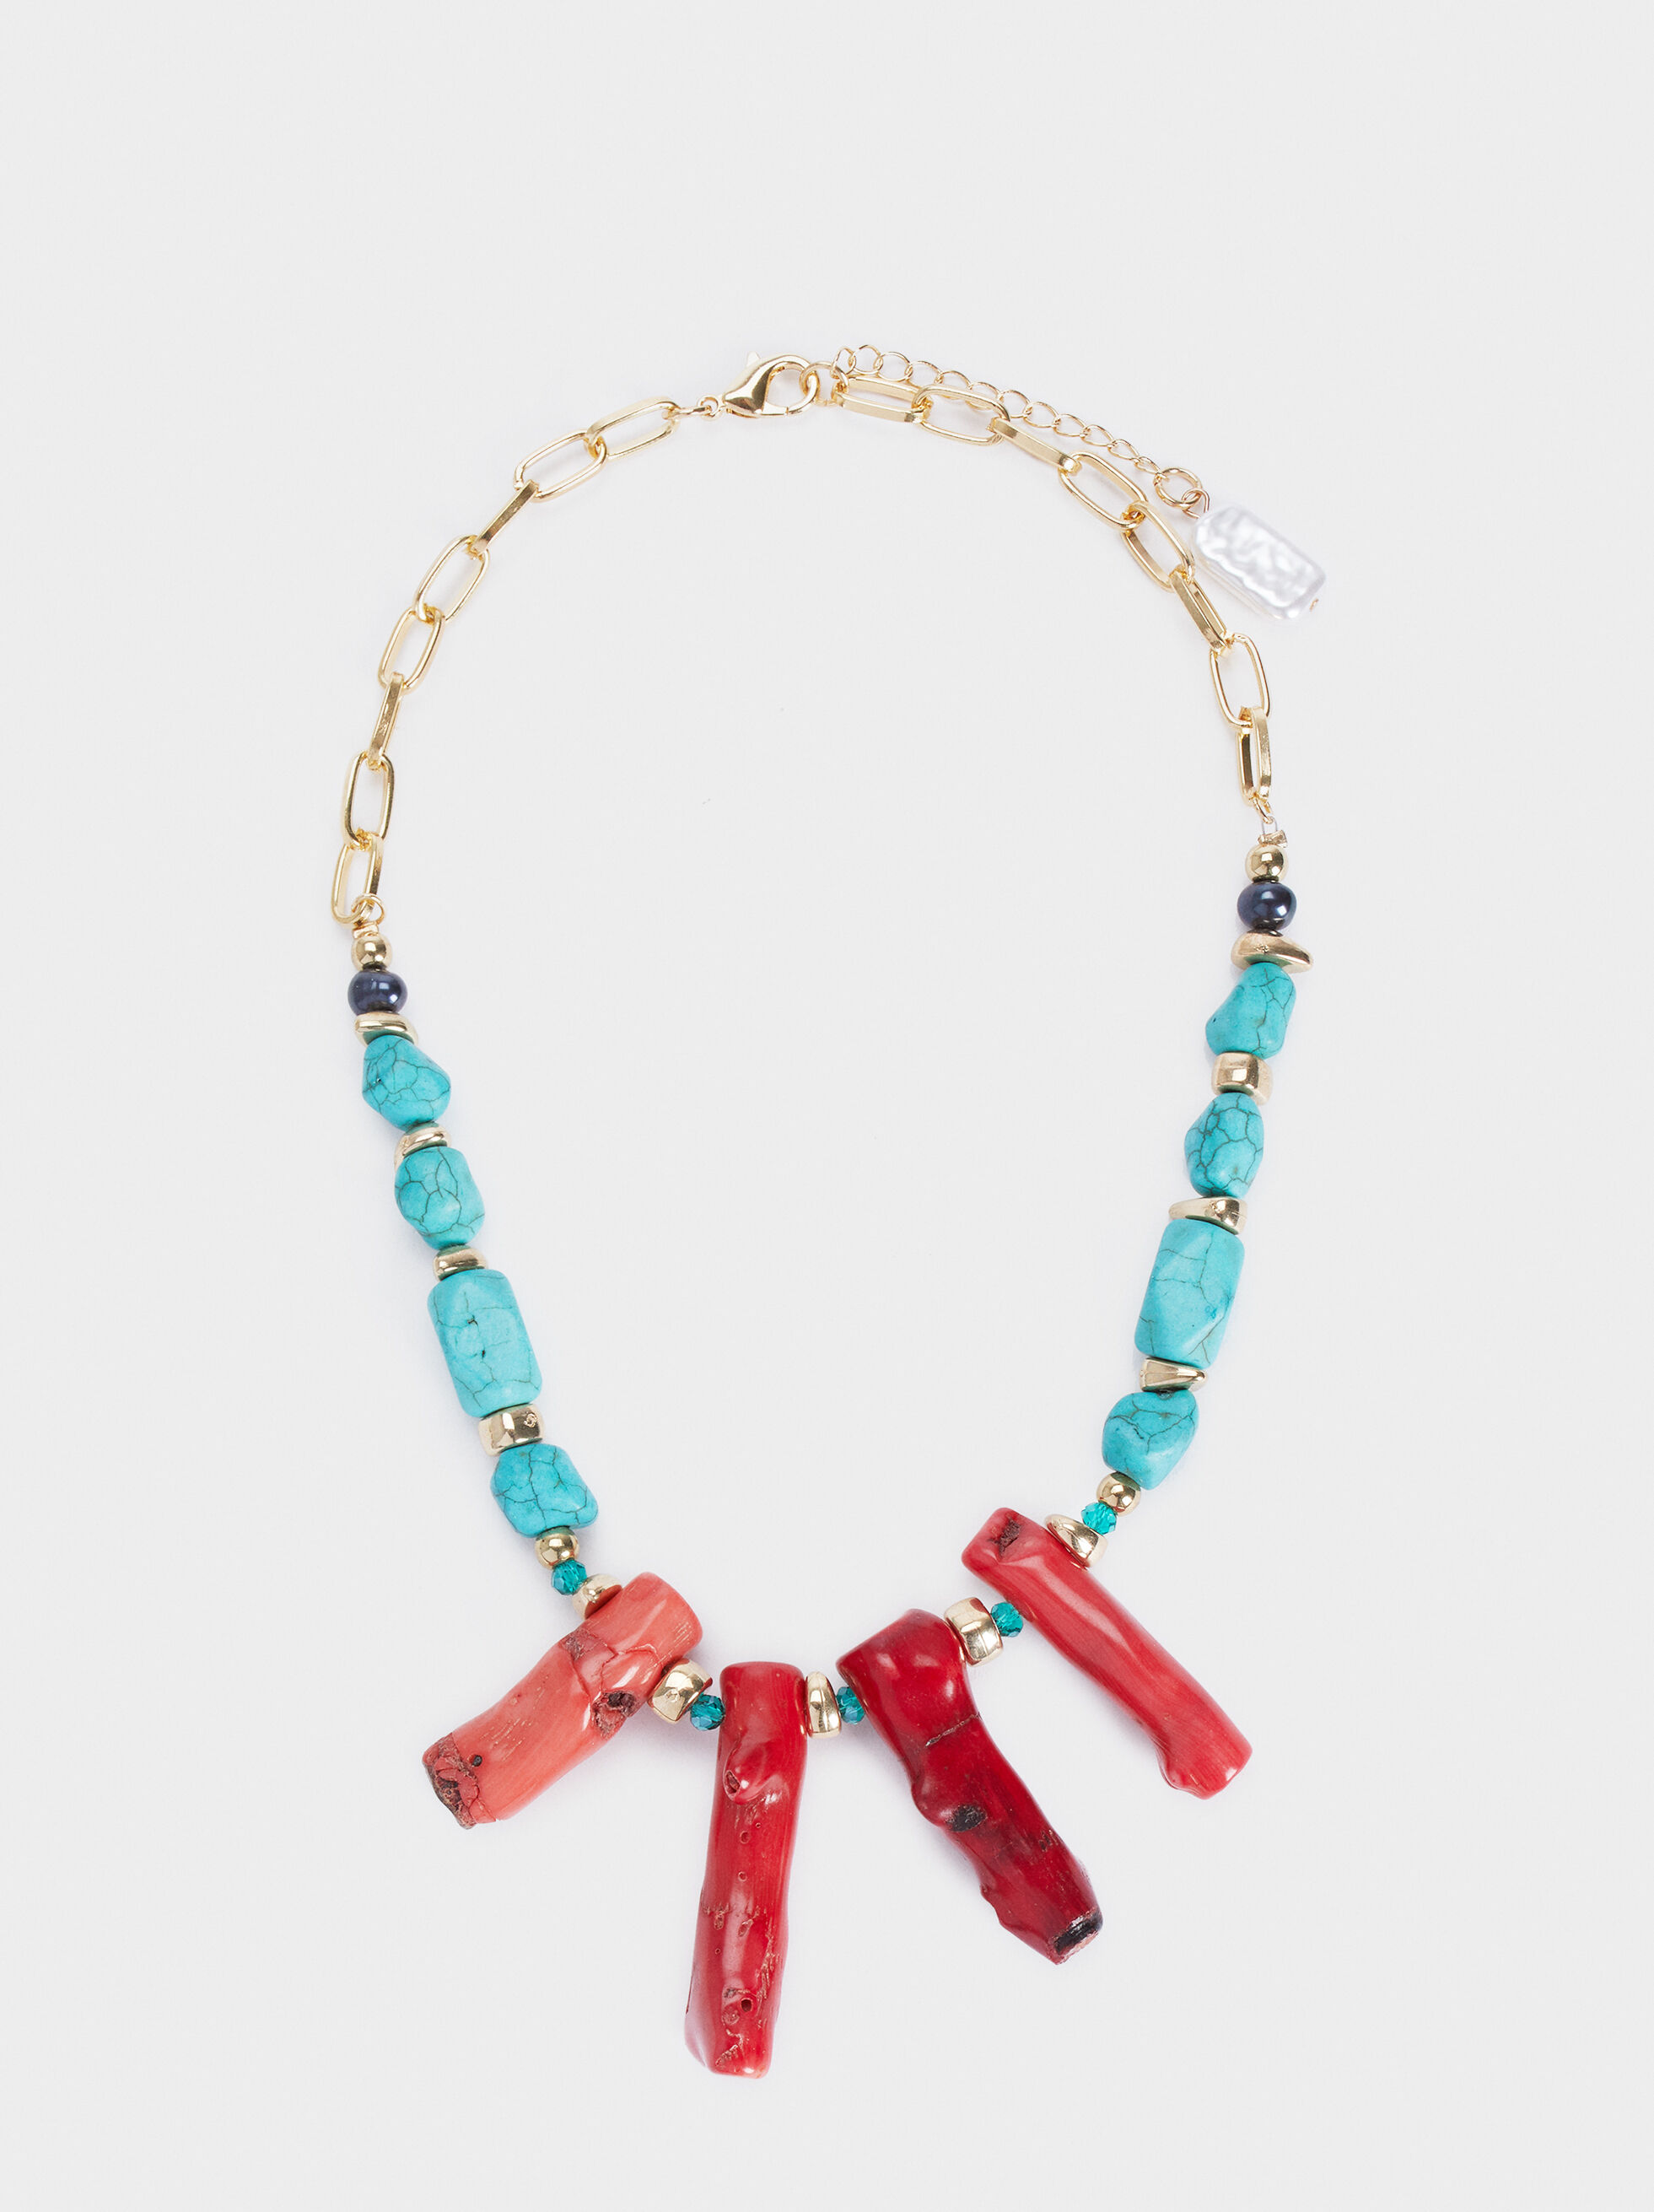 Recife Short Necklace With Coral Beads, Multicolor, hi-res